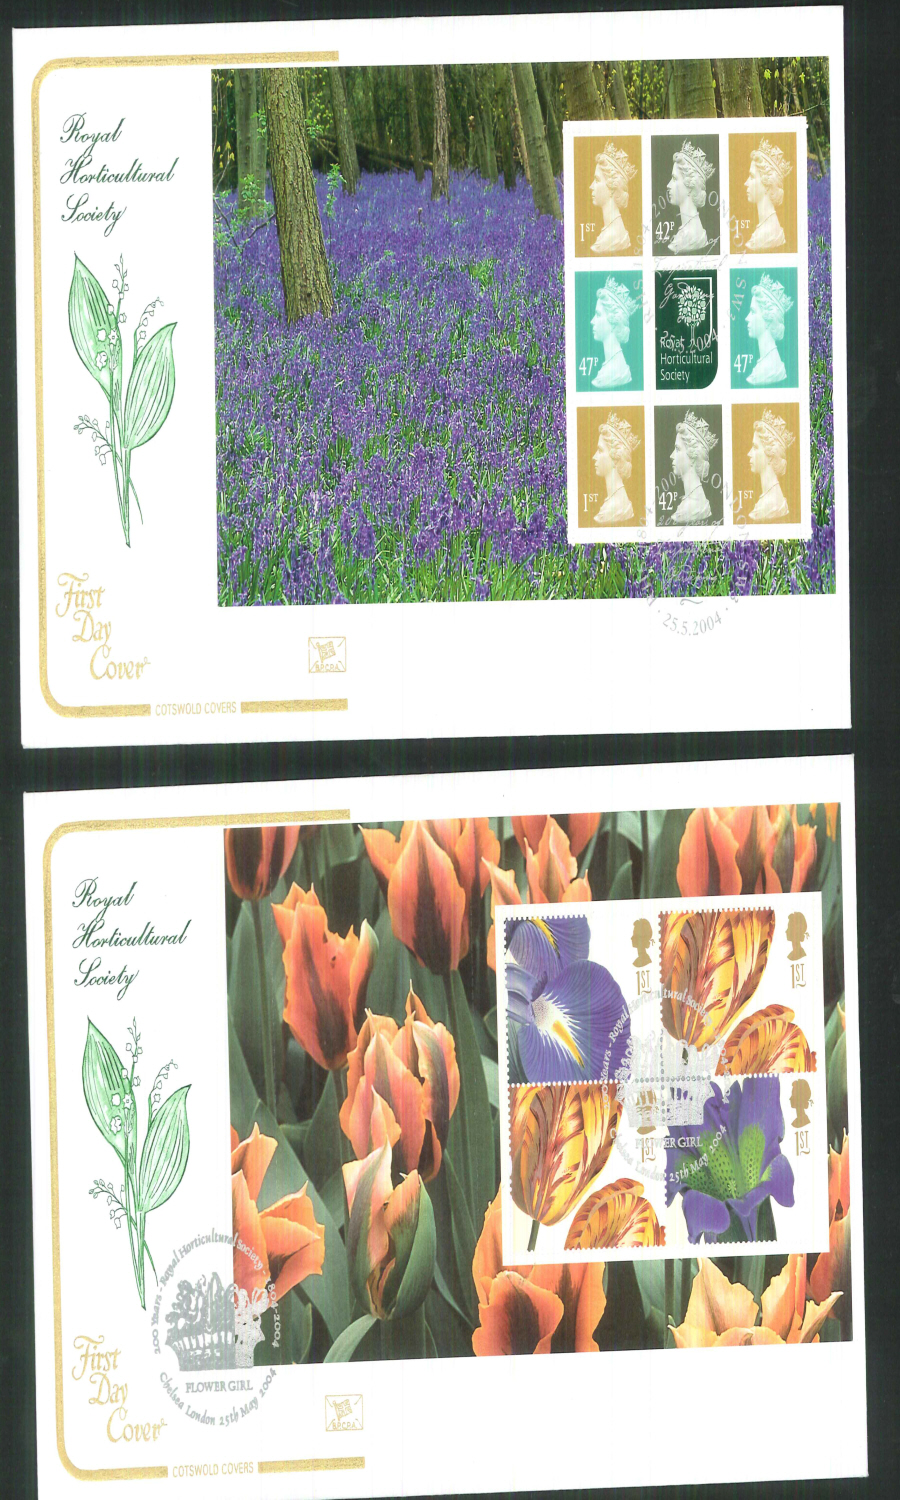 2004 - Royal Horticultural Society - Prestige Stamp Book Set of 4 Covers - Various Postmarks